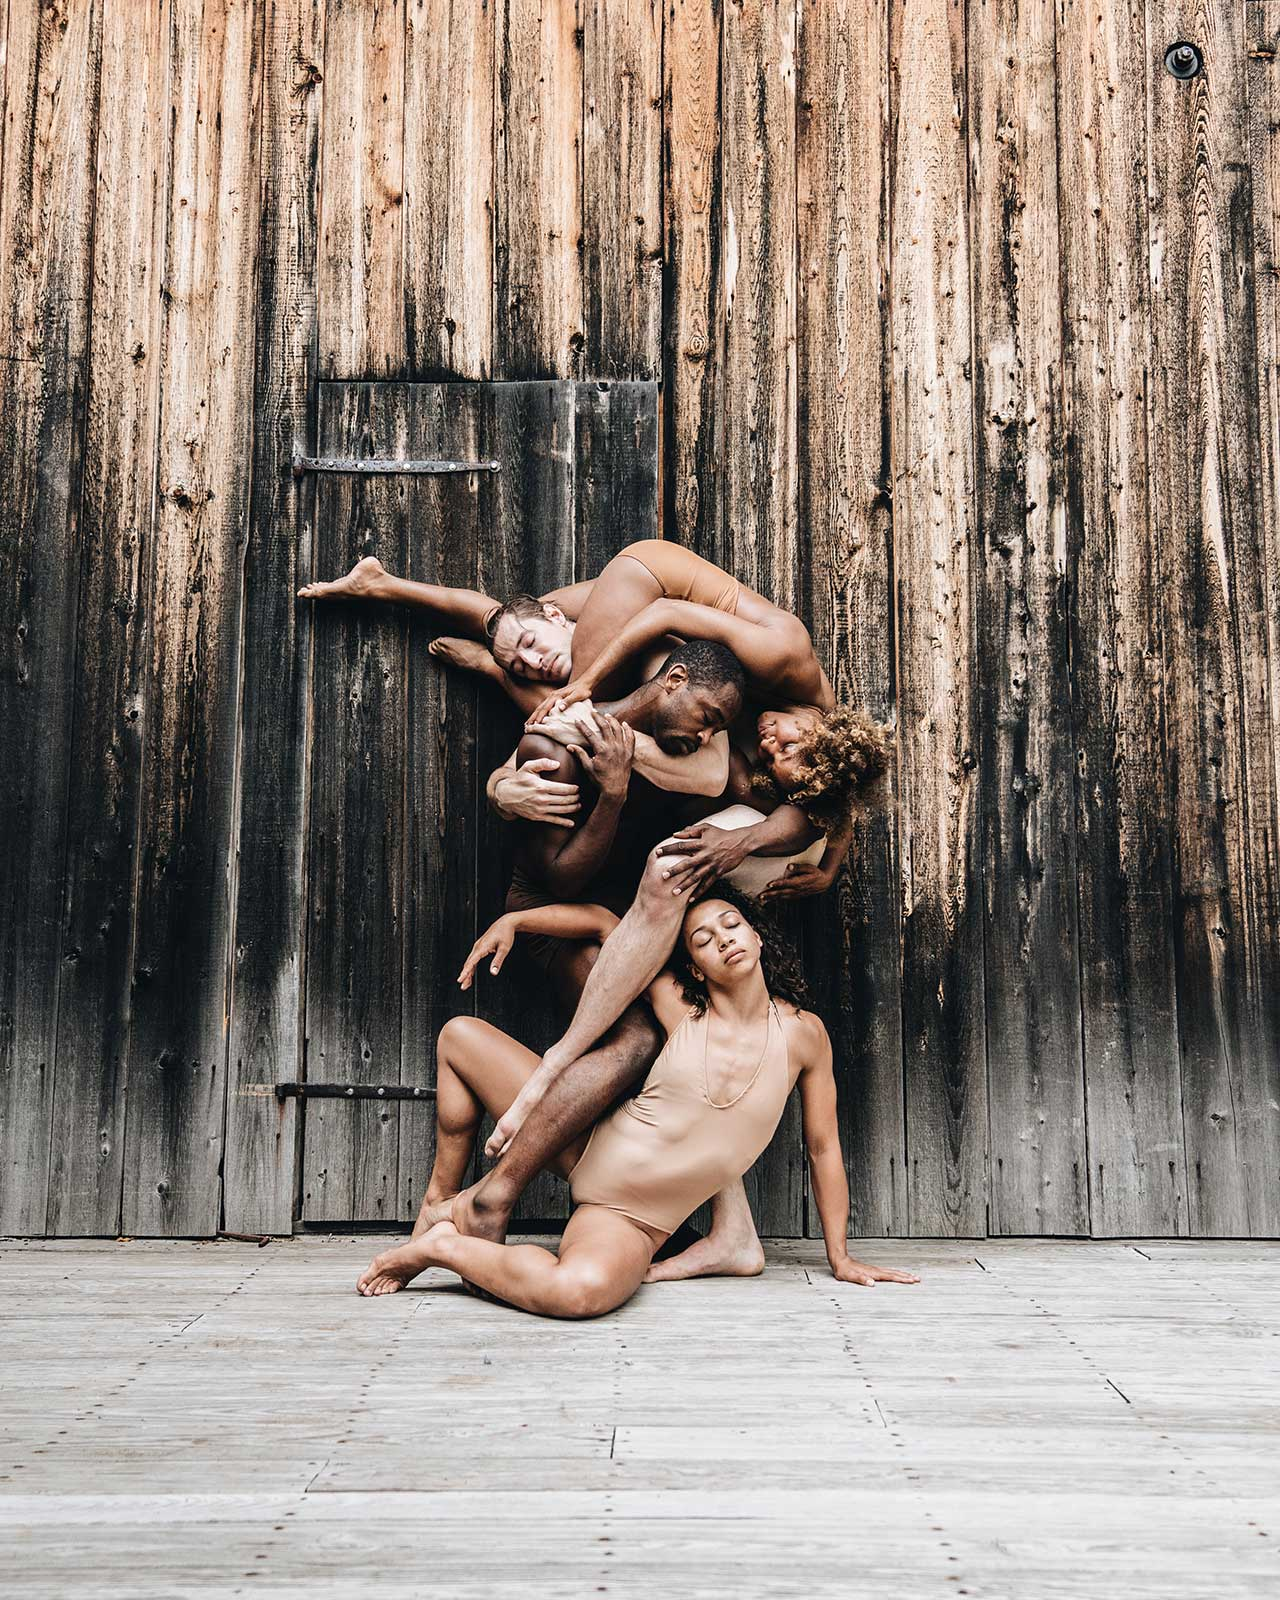 Location: Jacob's Pillow | Dancers: Antoine Banks-Sullivan, Krystal Butler, Jake Warren, Isabella Diaz | Photo © Oveck Reyes from the series #CamerasandDancers.